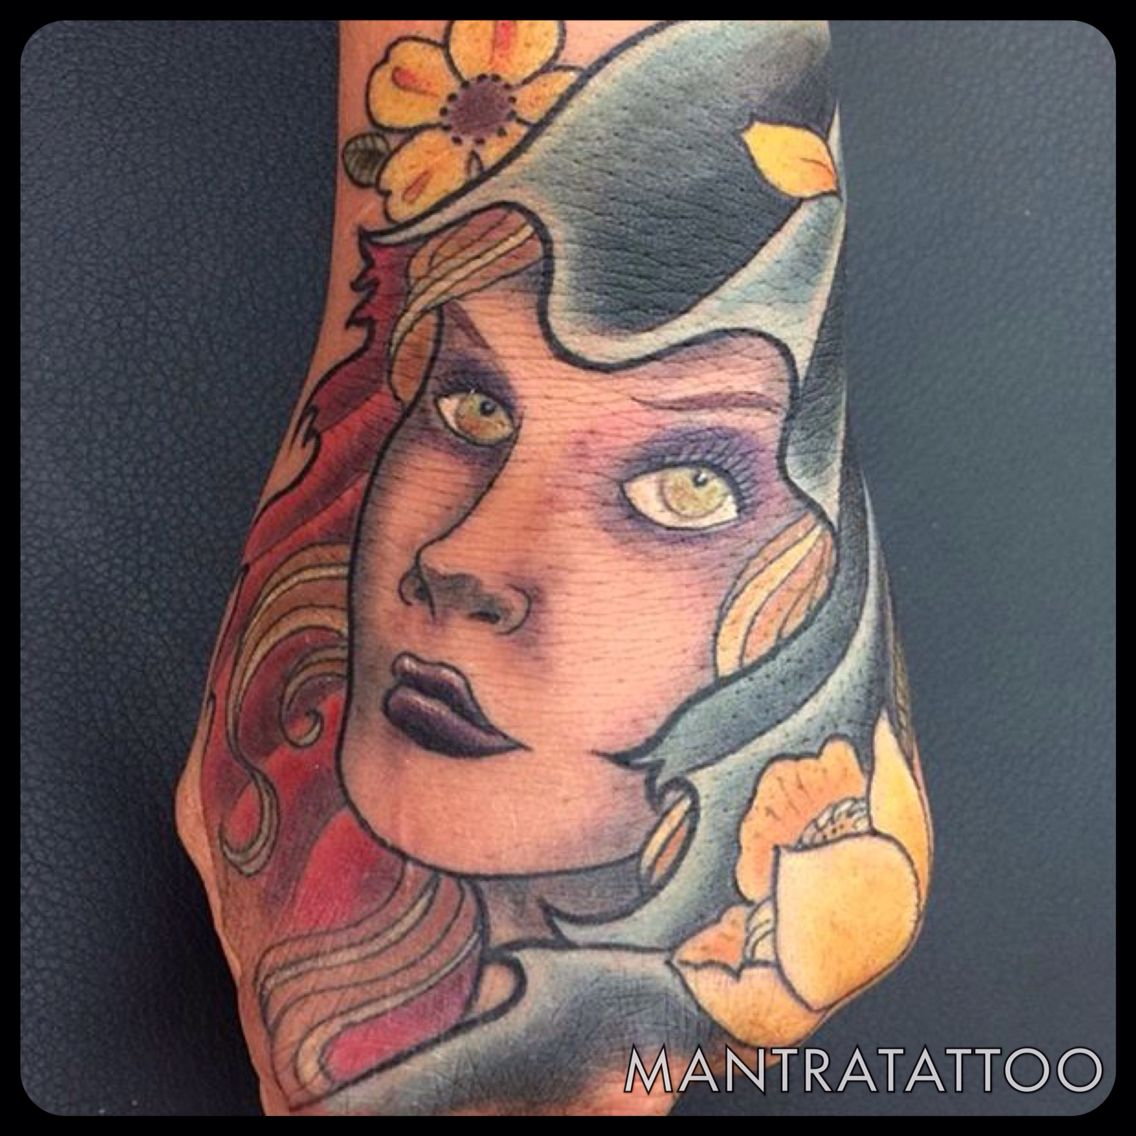 Beautiful hand piece done by Ben Parker here at Mantra tattoo.